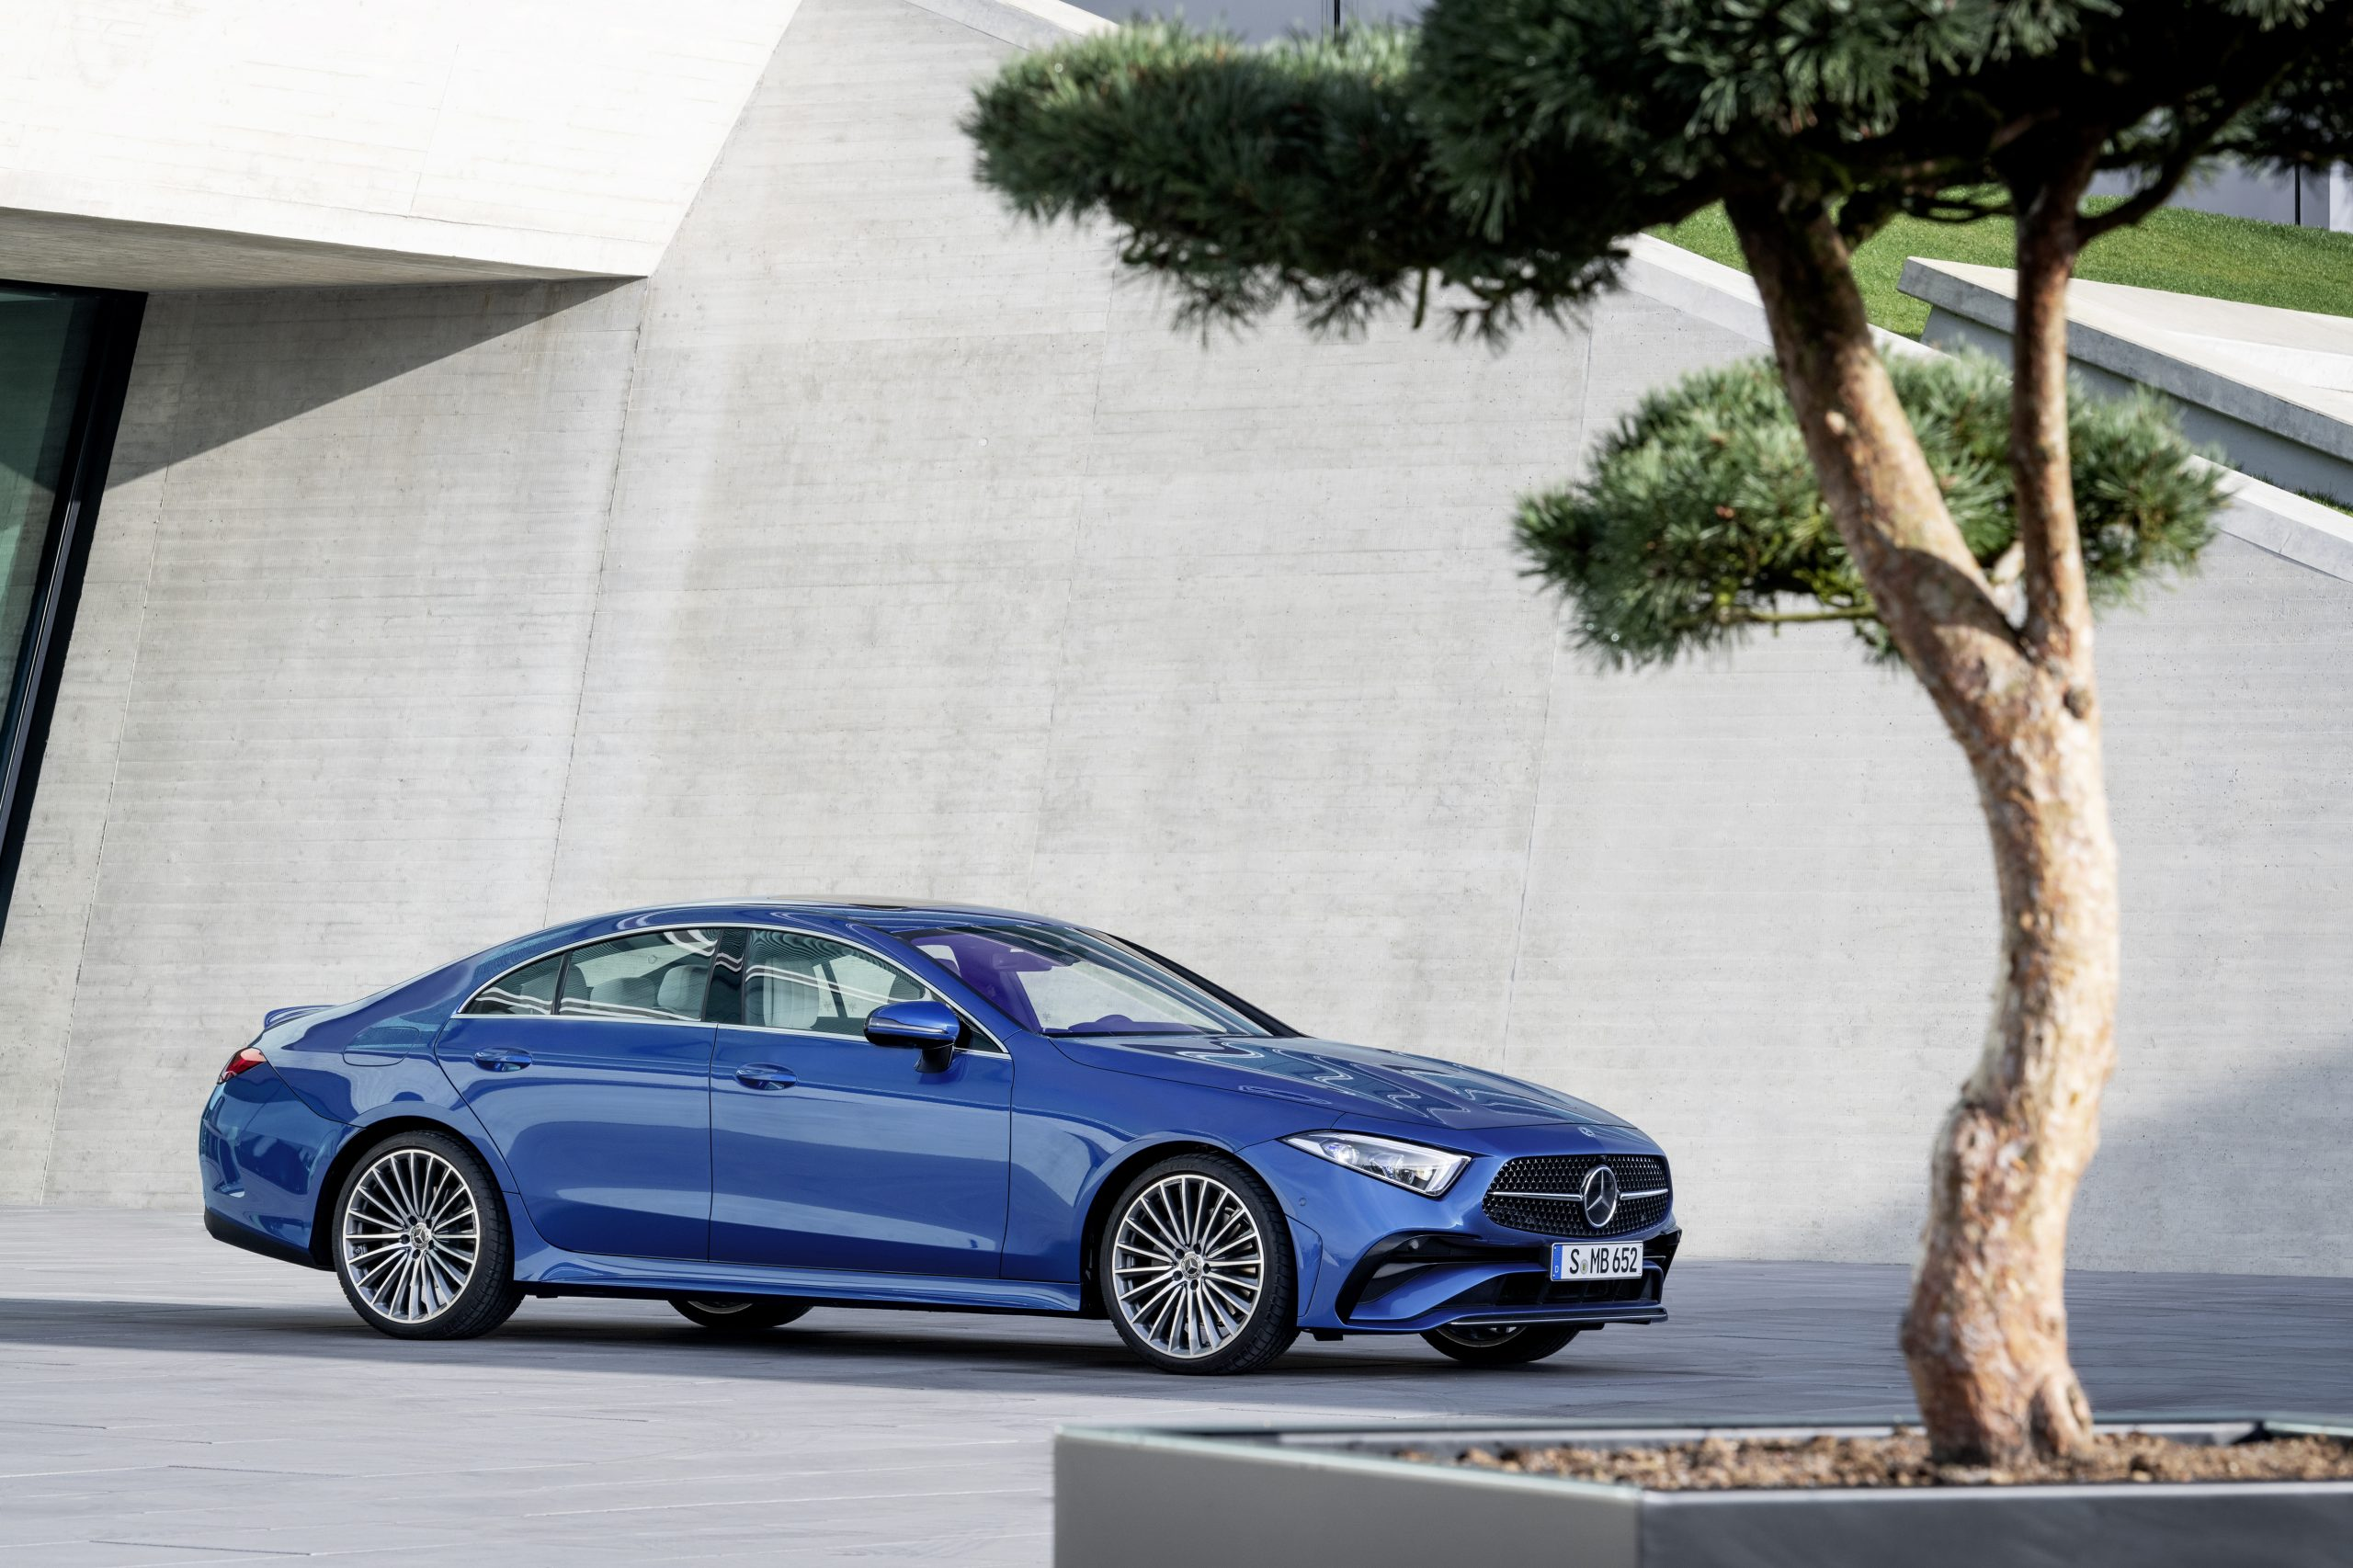 2021 Mercedes-Benz CLS 450 4Matic Coupé